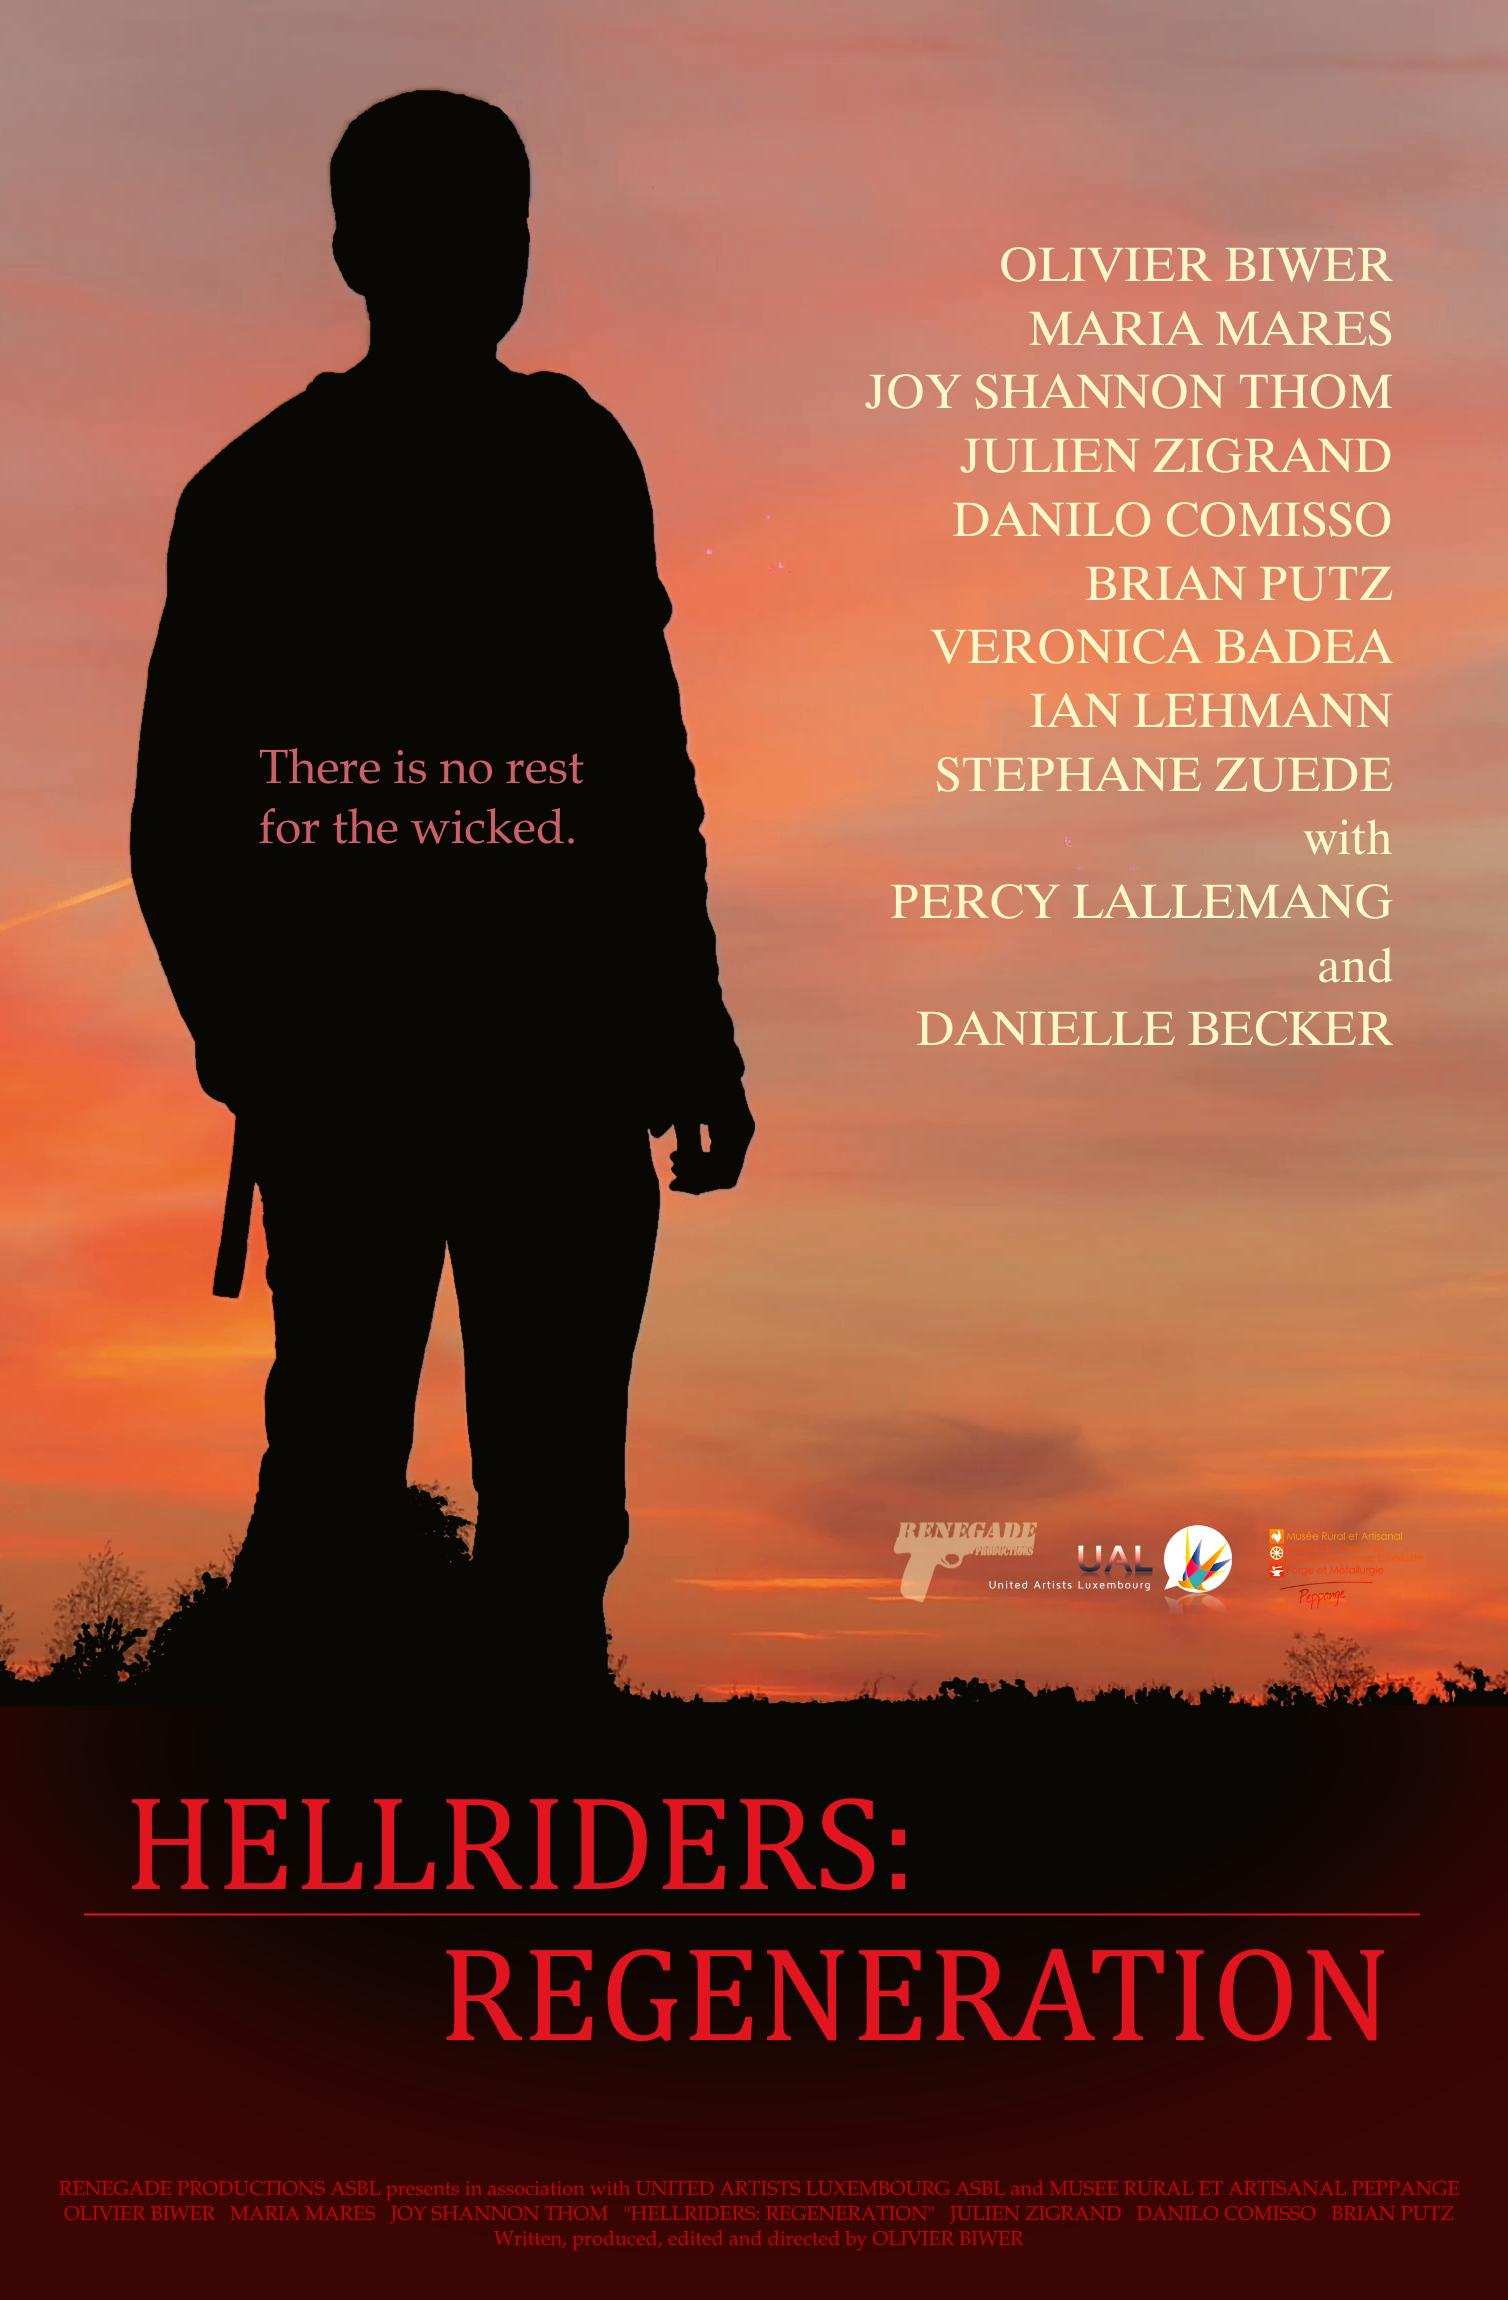 Hellriders: Regeneration